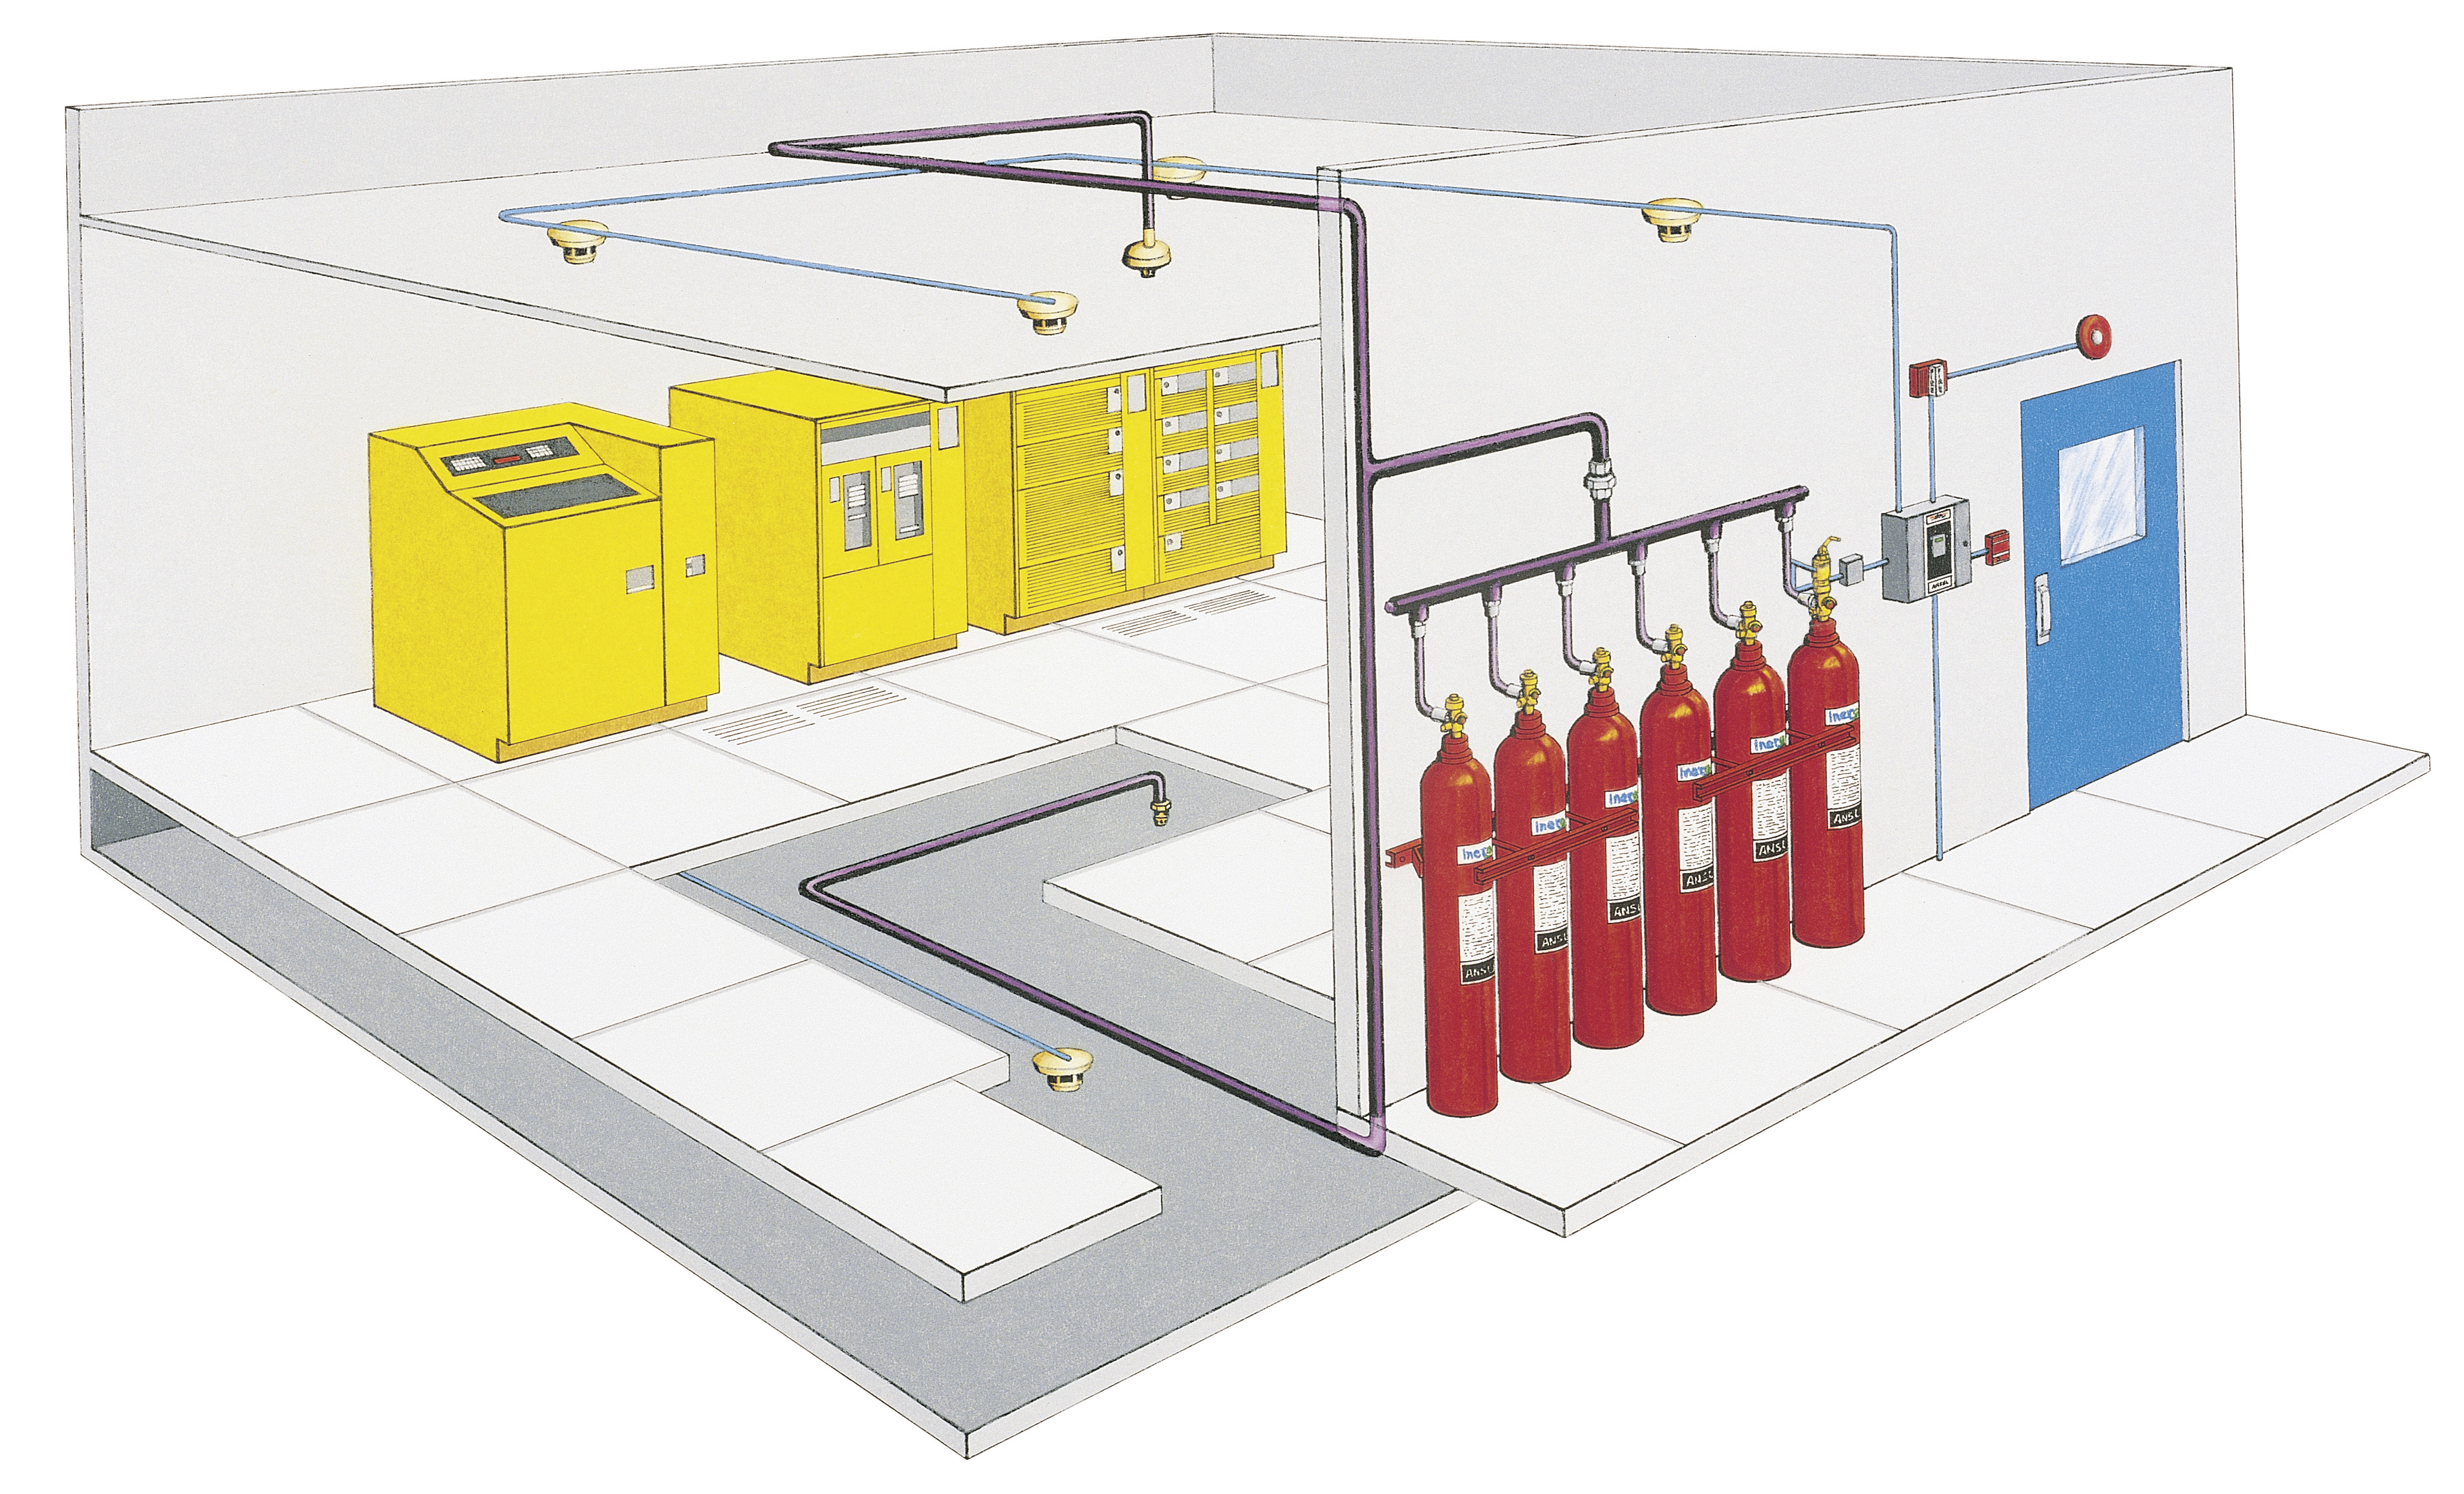 Training besides Products additionally Kidde 50LB System Cylinder 4210 01 062 4138 4210 01 062 4138 besides Victorian era fire extinguisher grenades additionally Ansul 10994 Qc Cylinder Valve Label. on fire extinguisher ansul system